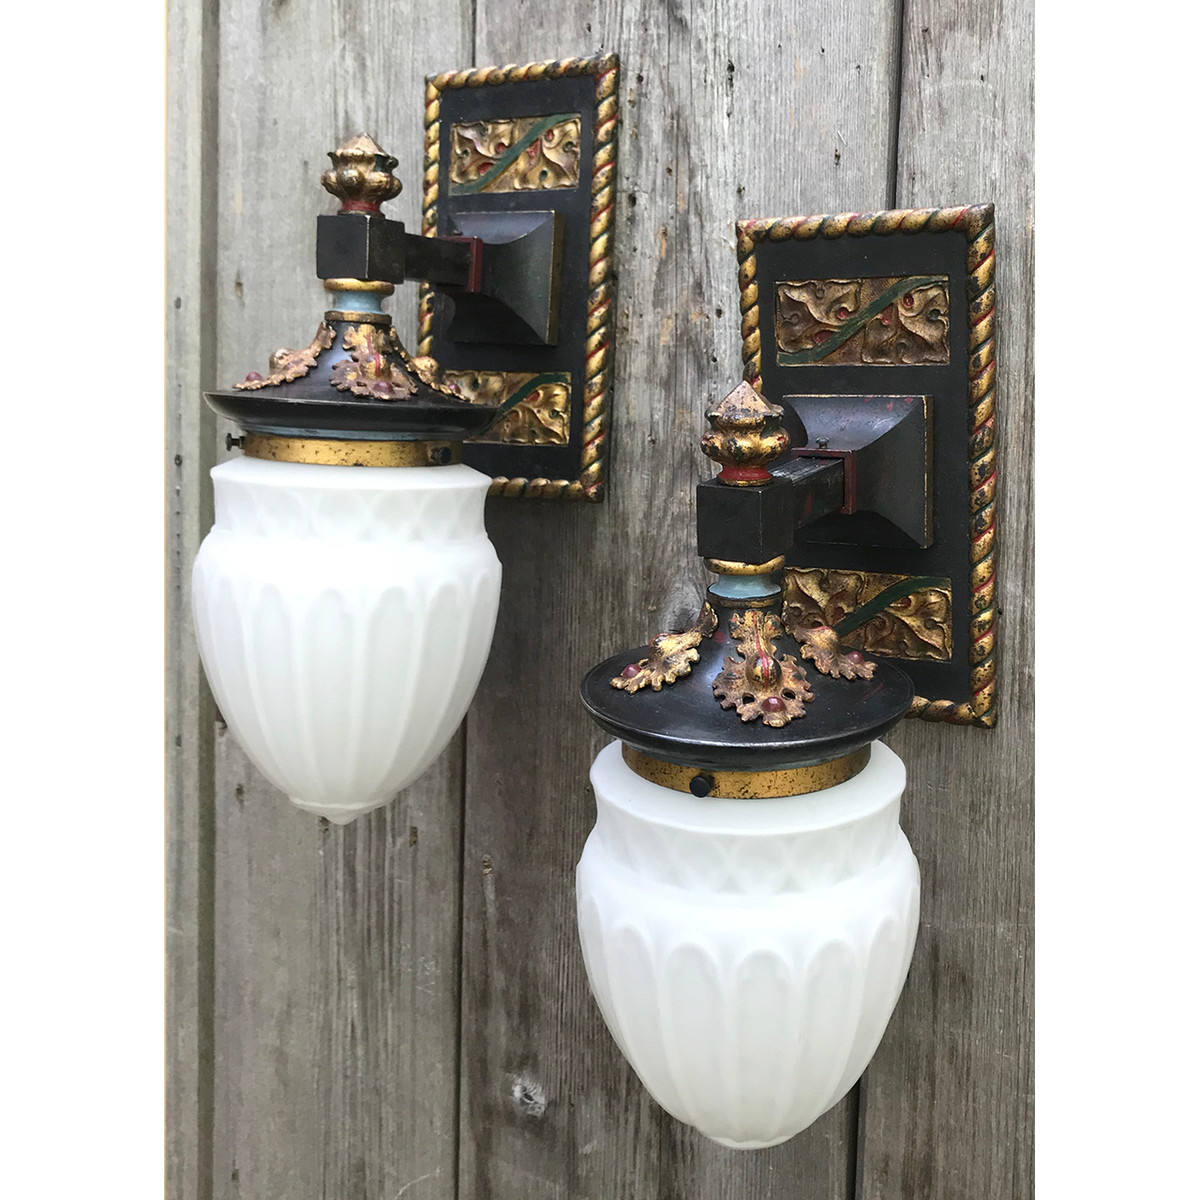 L18127 - Pair of Gothic Revival Style Sconces